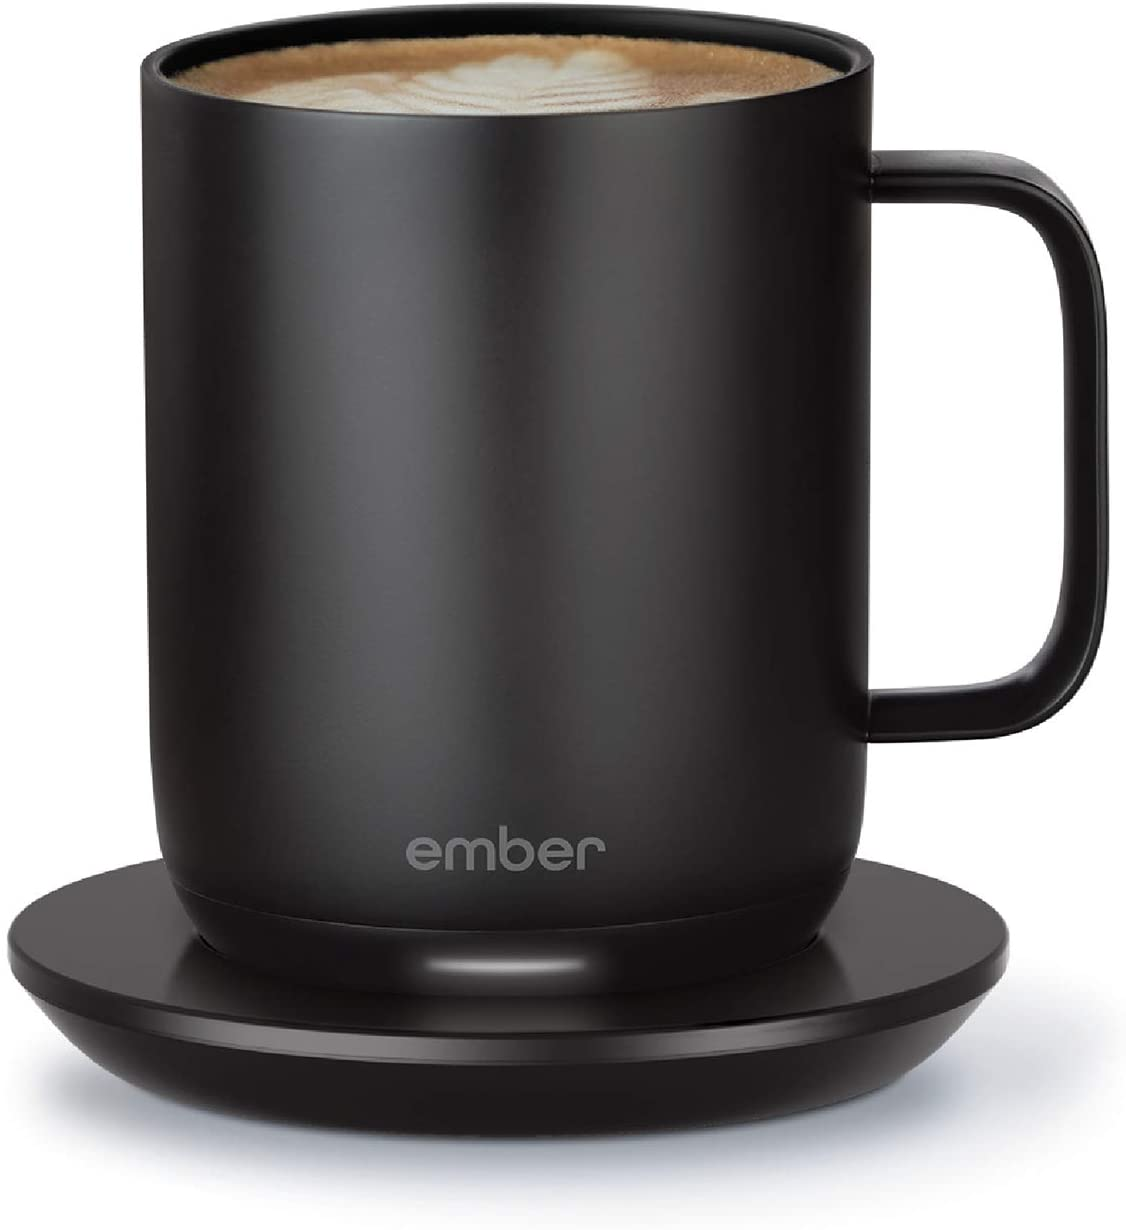 Best gifts for dads – Ember Temperature Control Smart Mug